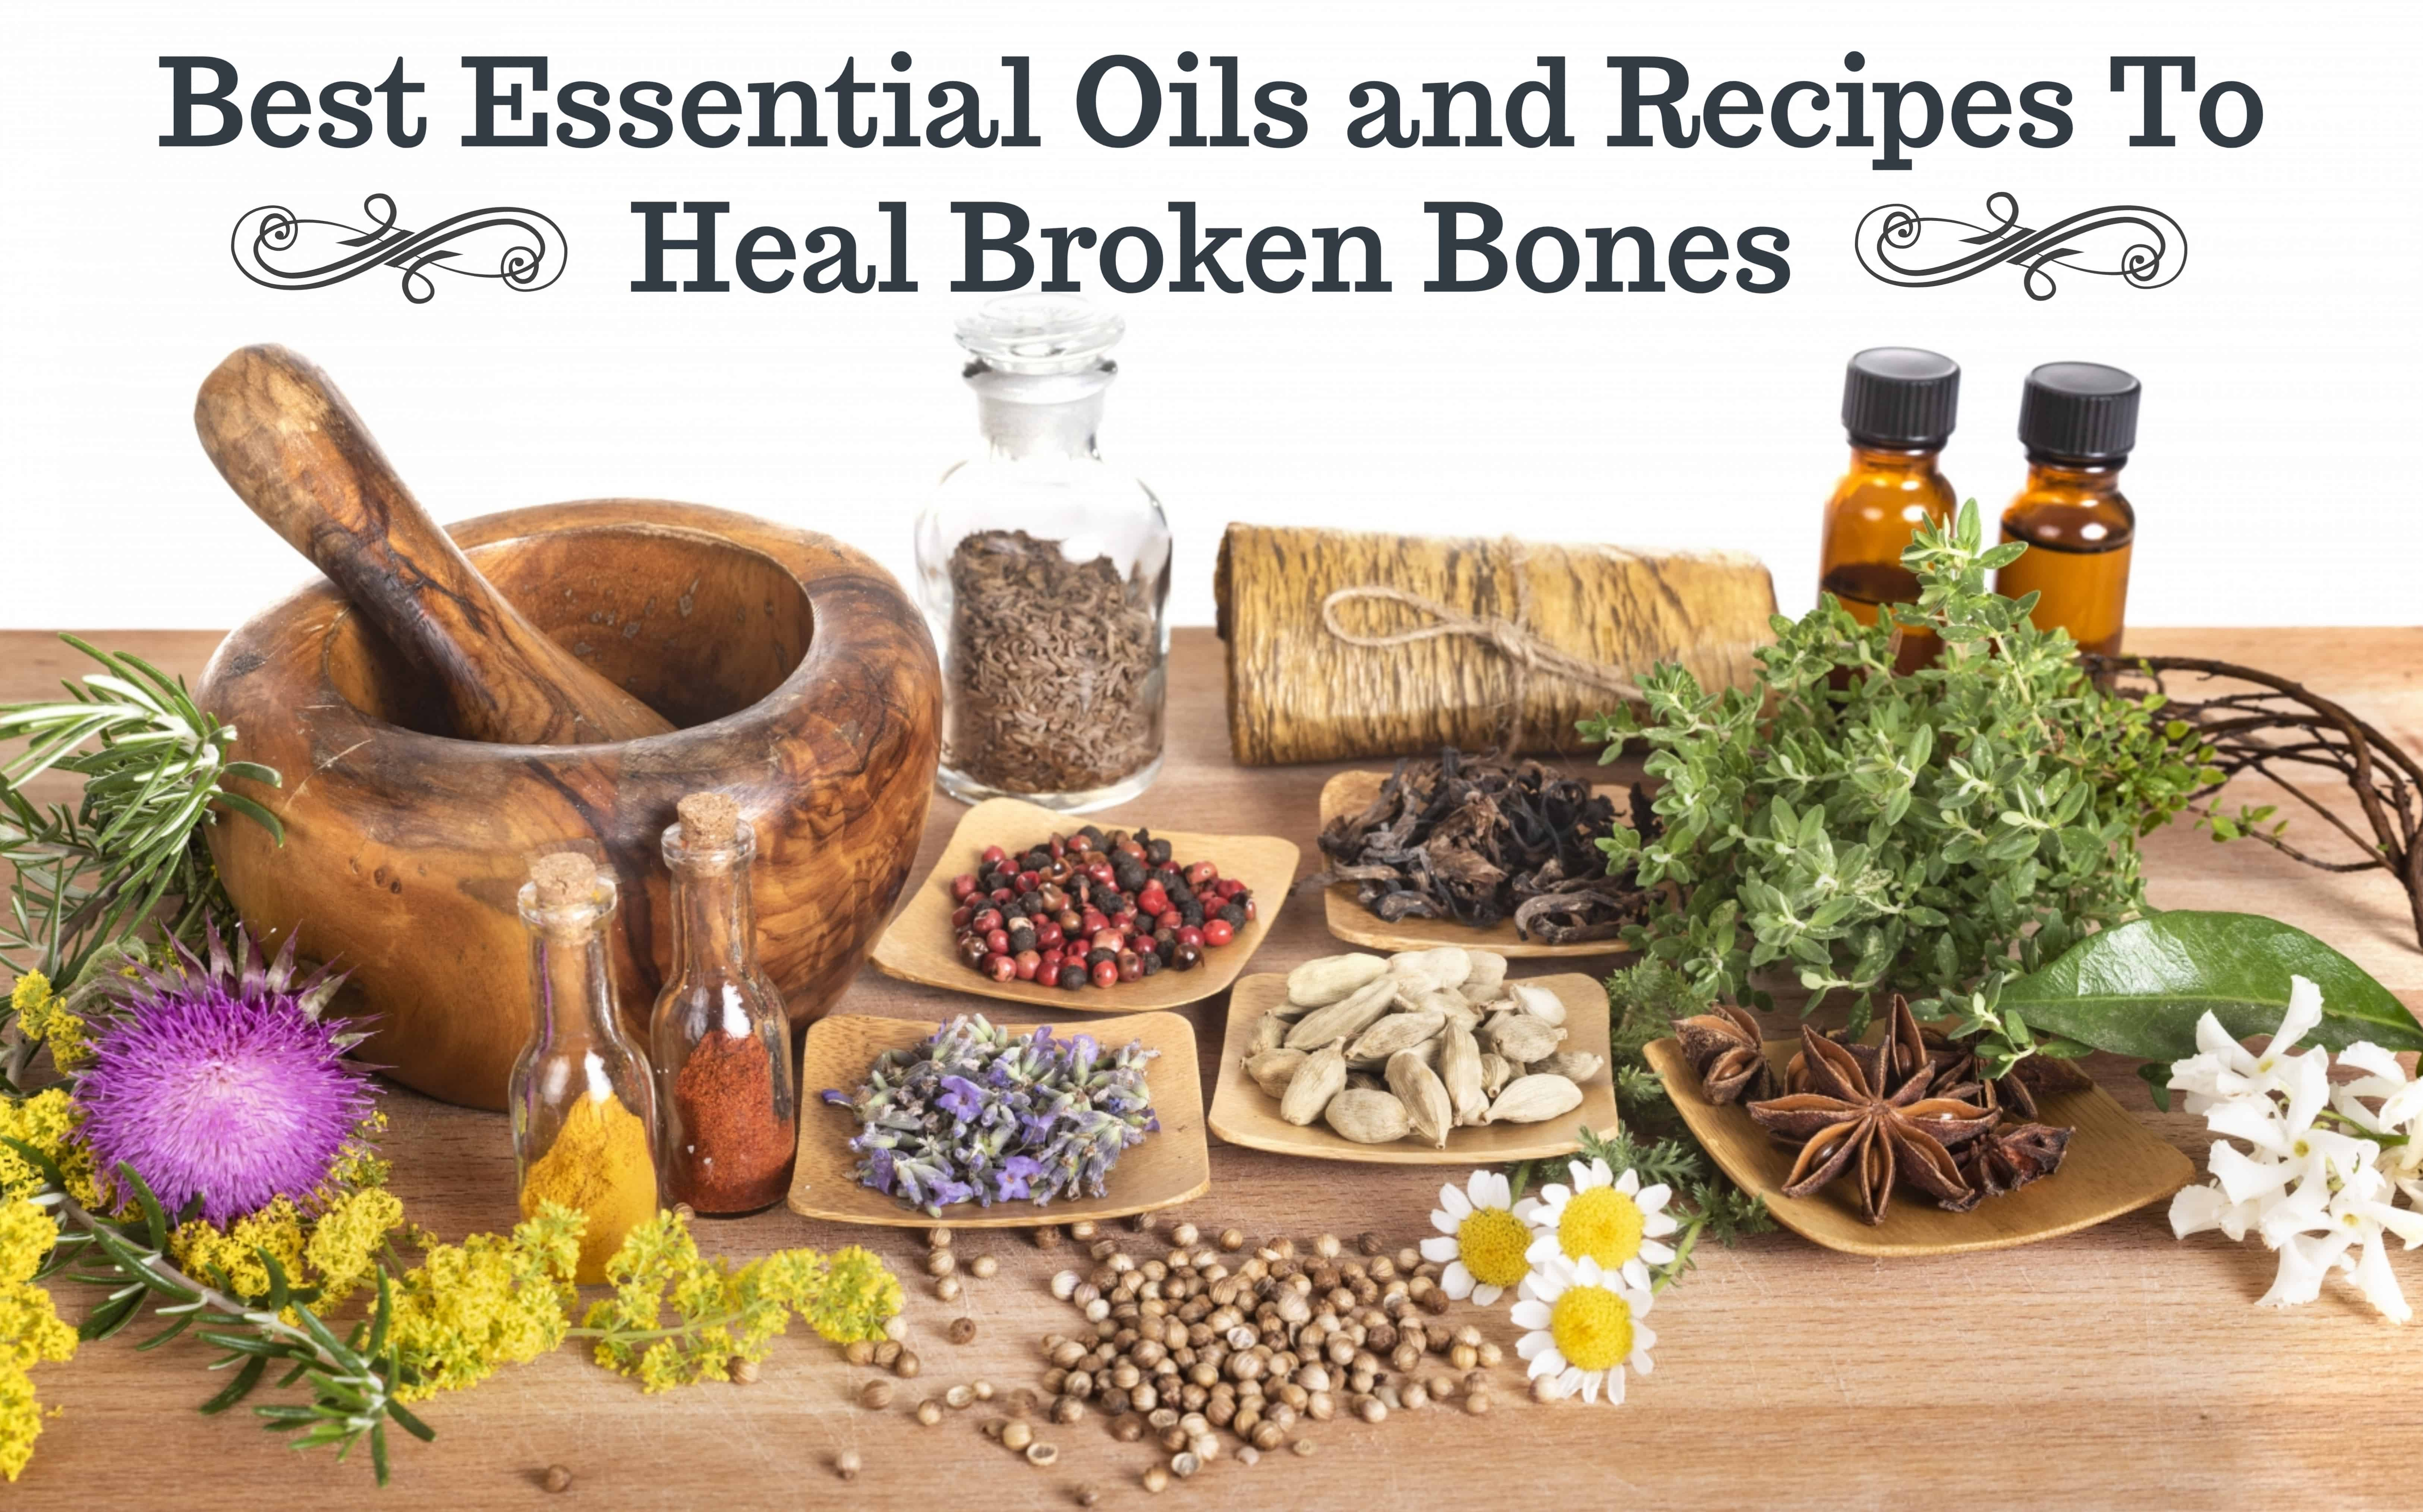 Best Essential Oils For Healing Broken Bones | Essential Oil Benefits